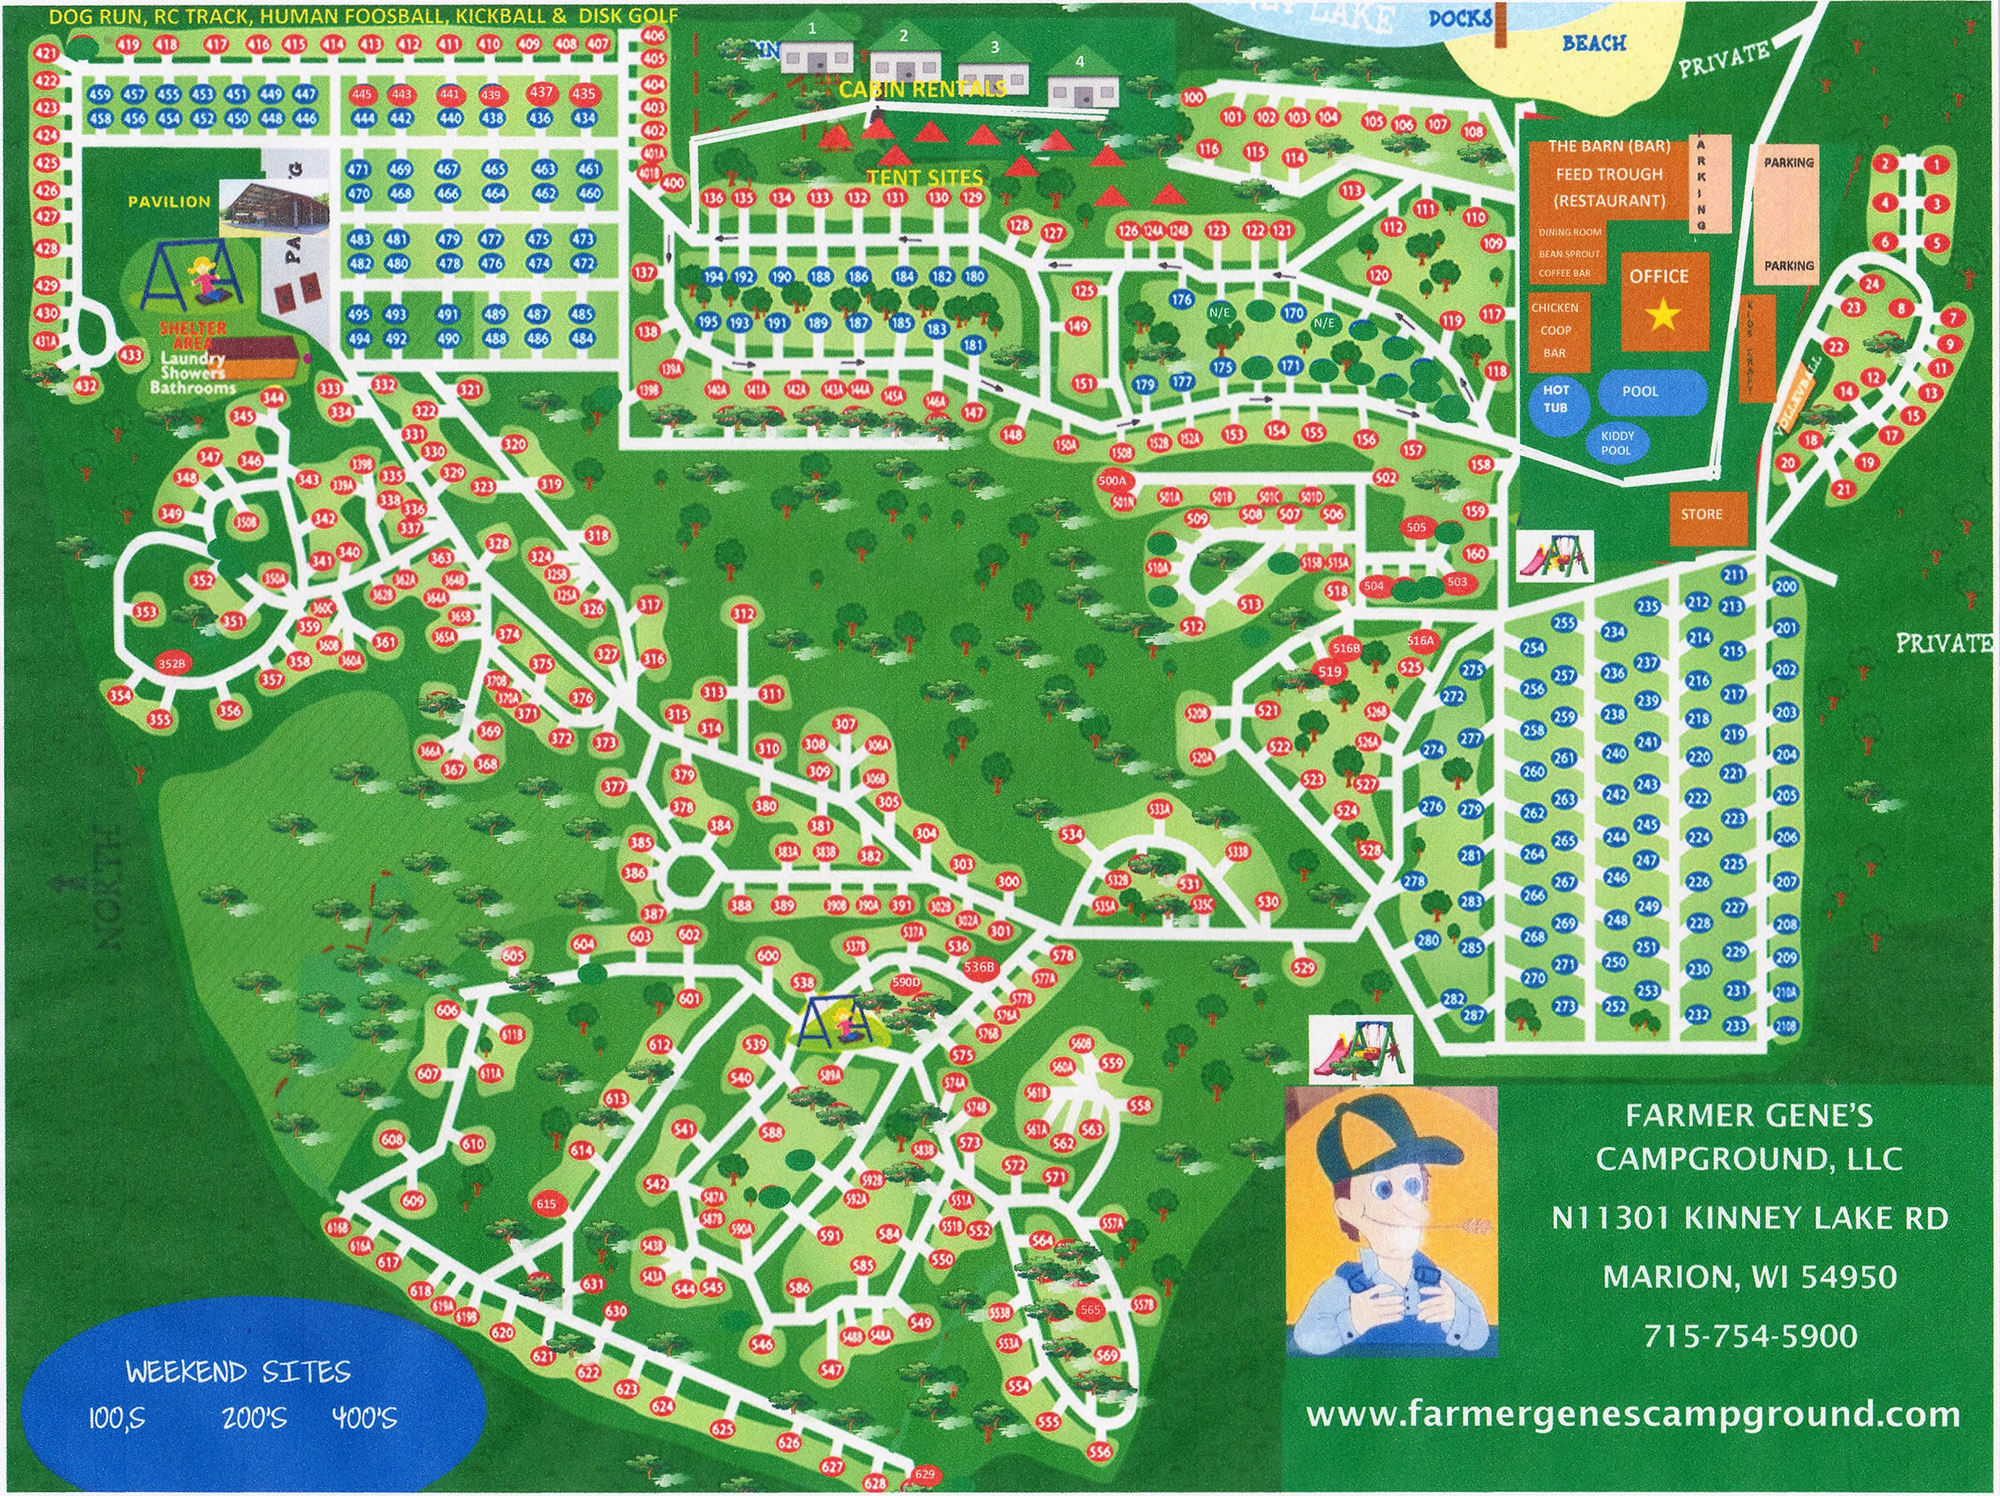 Marion Wisconsin Map.Campground Maps Farmer Gene S Campground